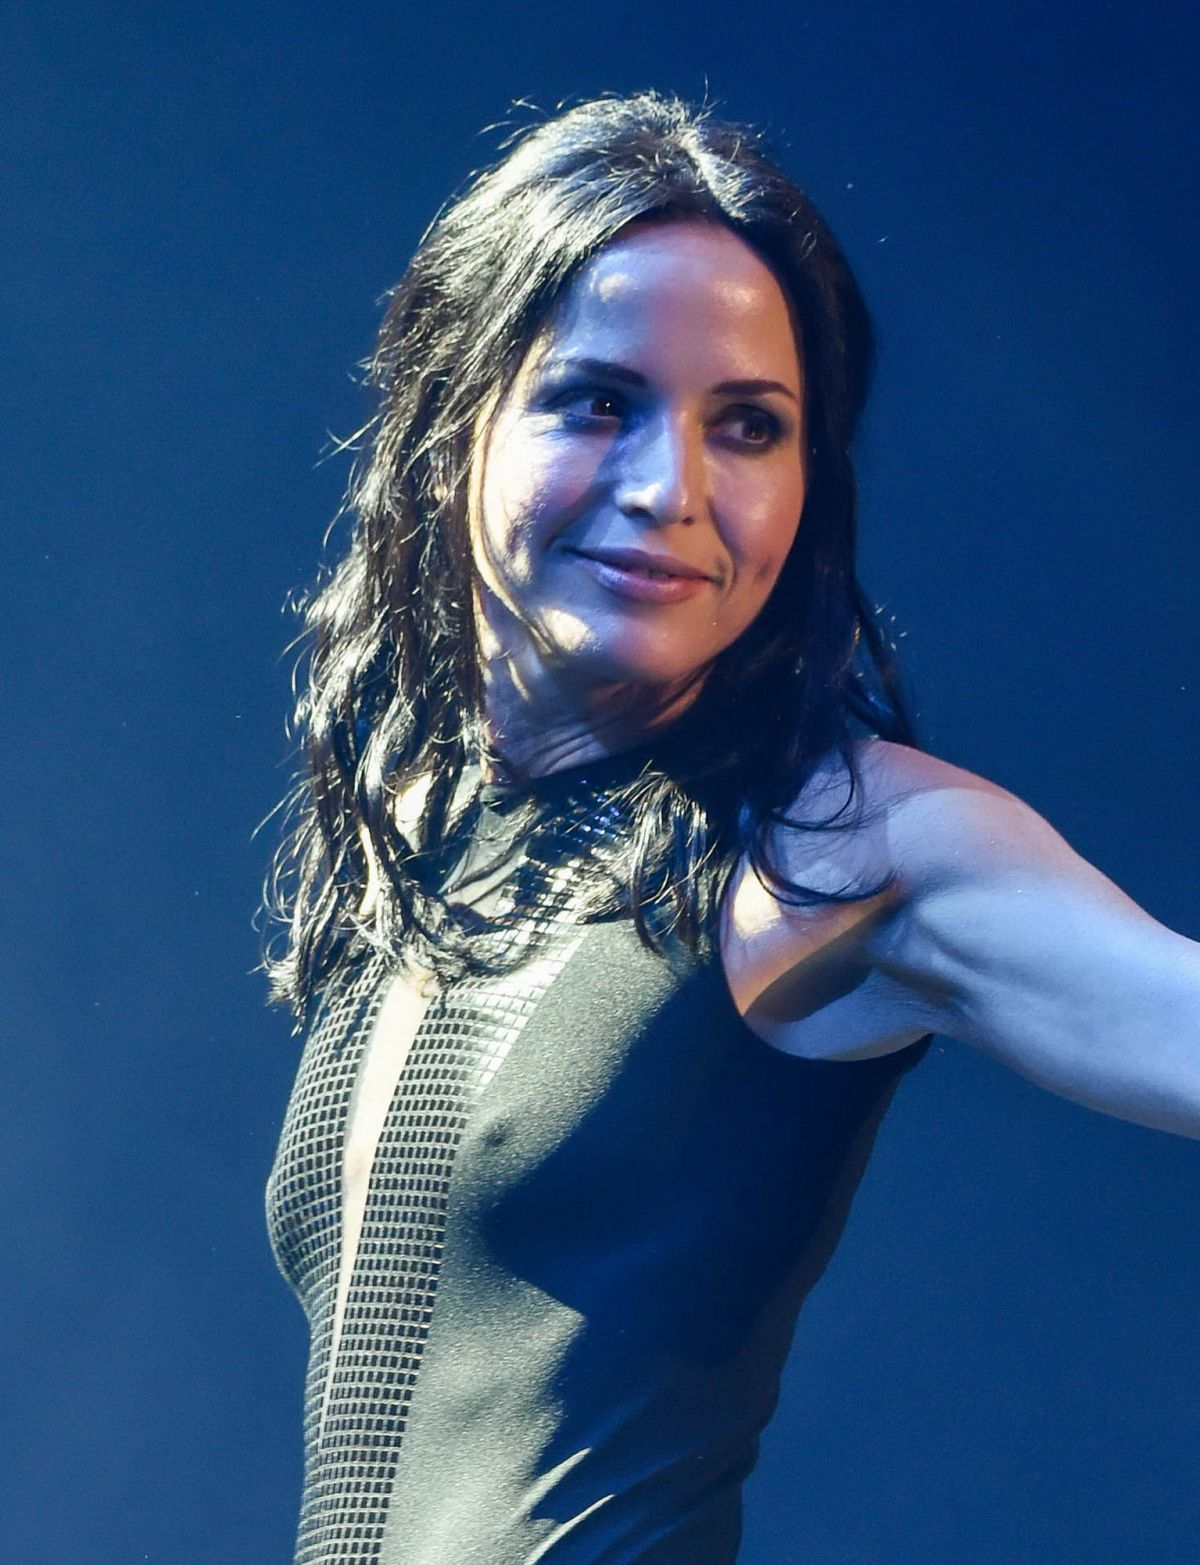 Celebrity Andrea Corr nudes (51 foto and video), Ass, Leaked, Twitter, butt 2006